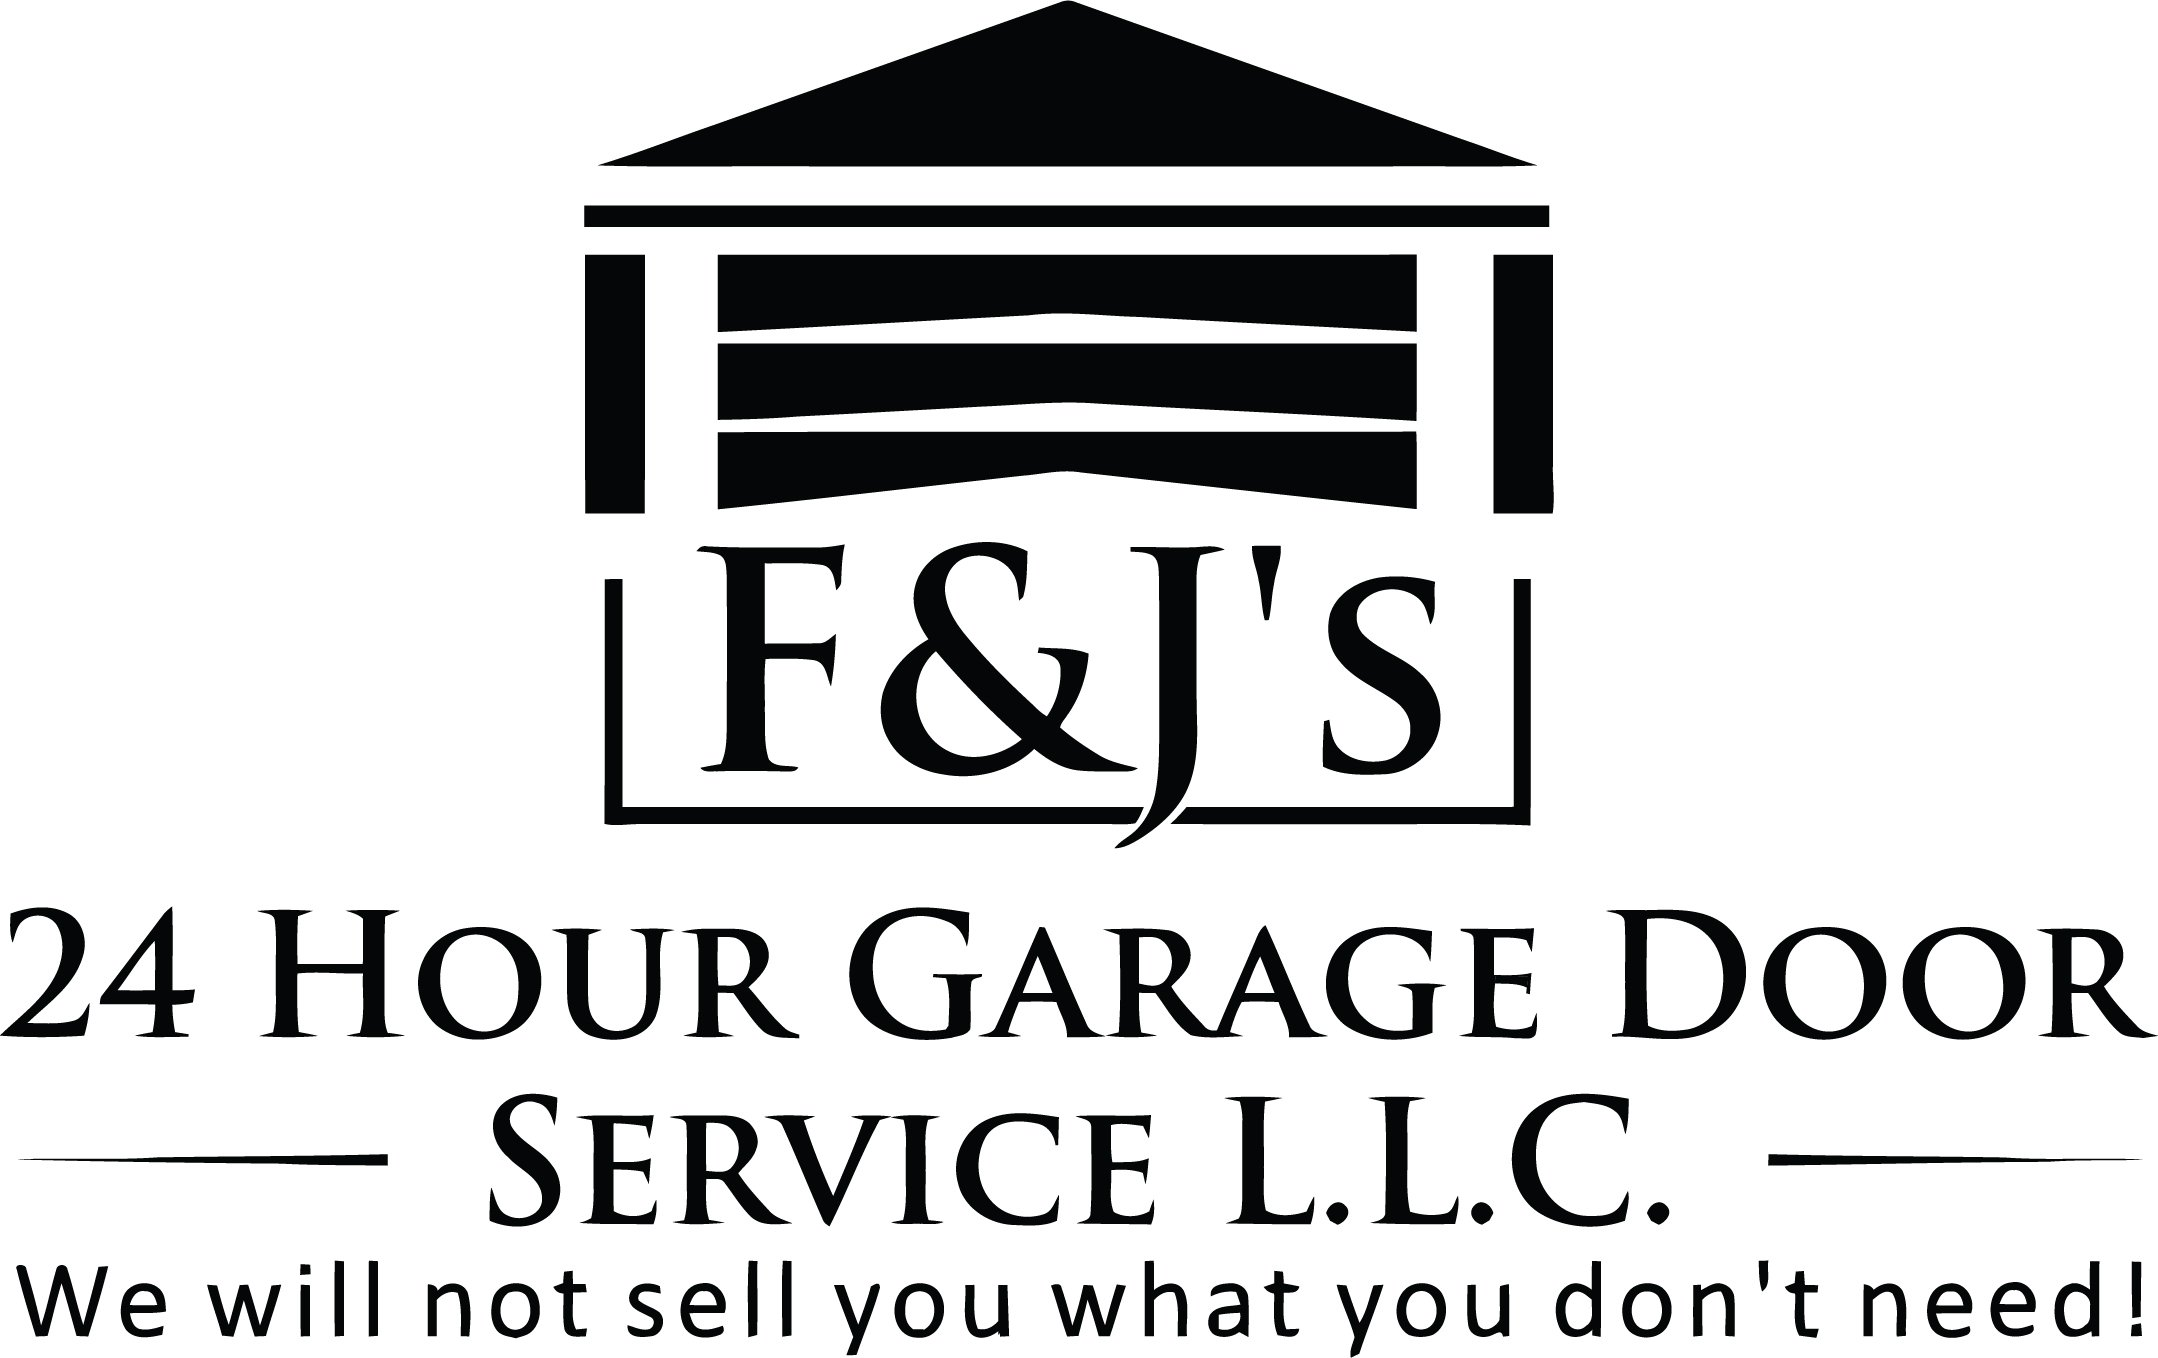 F&J's 24 Hour Garage Door Service, LLC